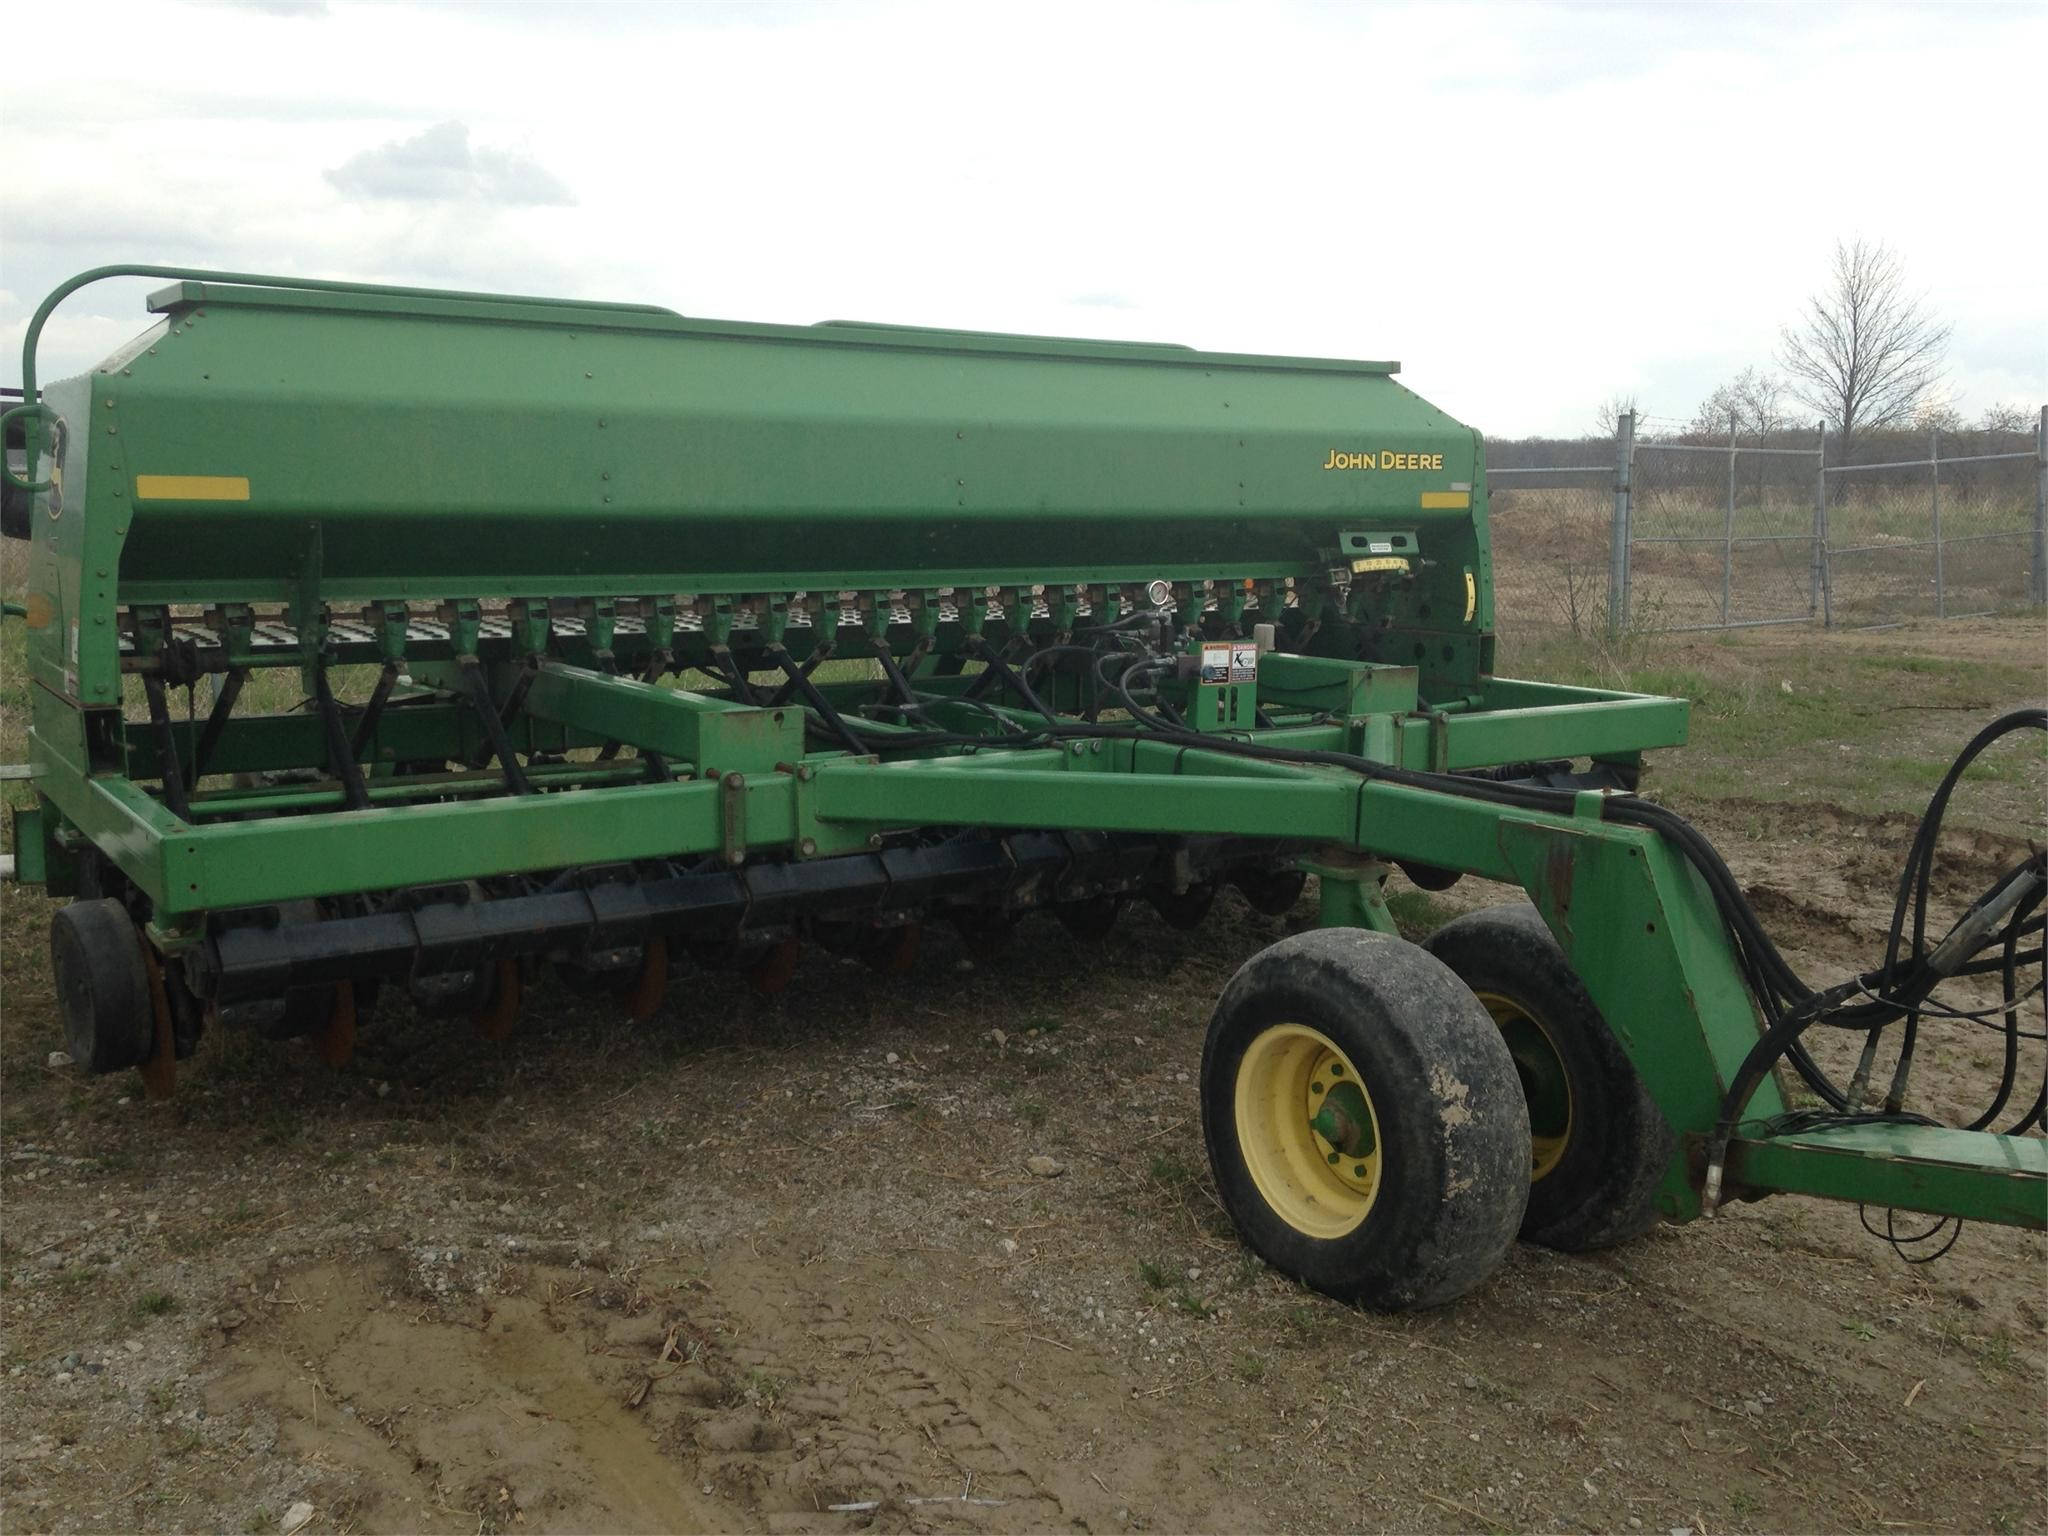 Wisconsin Ag Connection - JOHN DEERE 1590 Grain Drills for ...